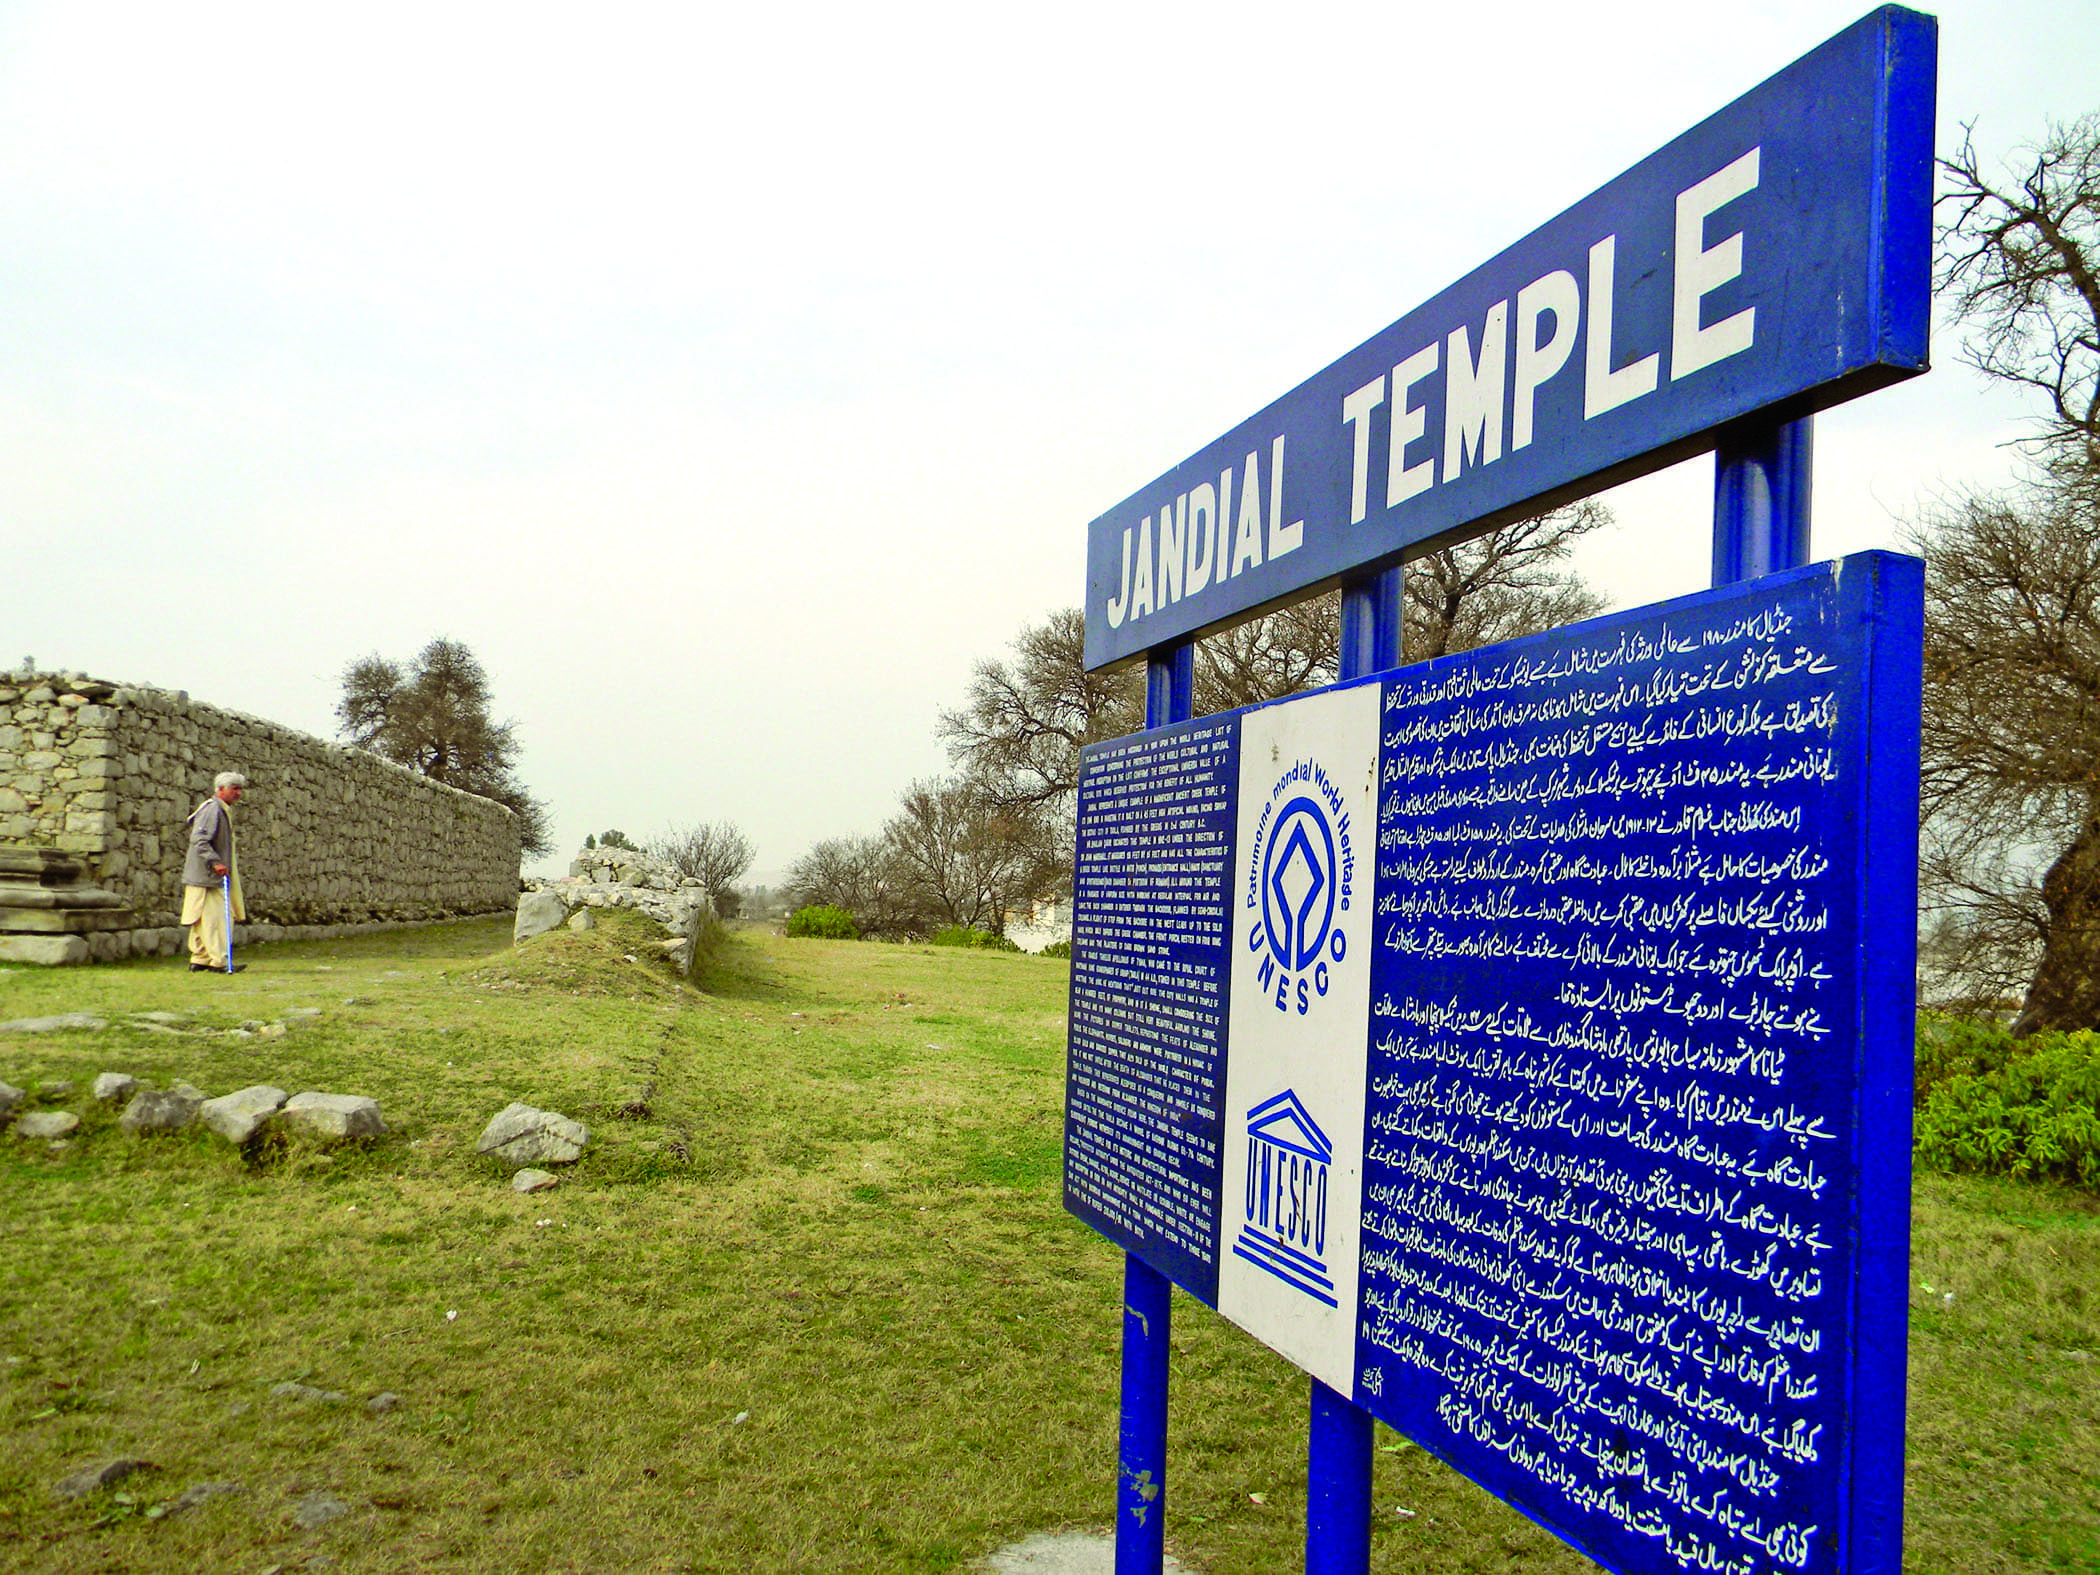 A board erected at the site of Jandial temple welcomes visitors with information about the site both in English and Urdu.